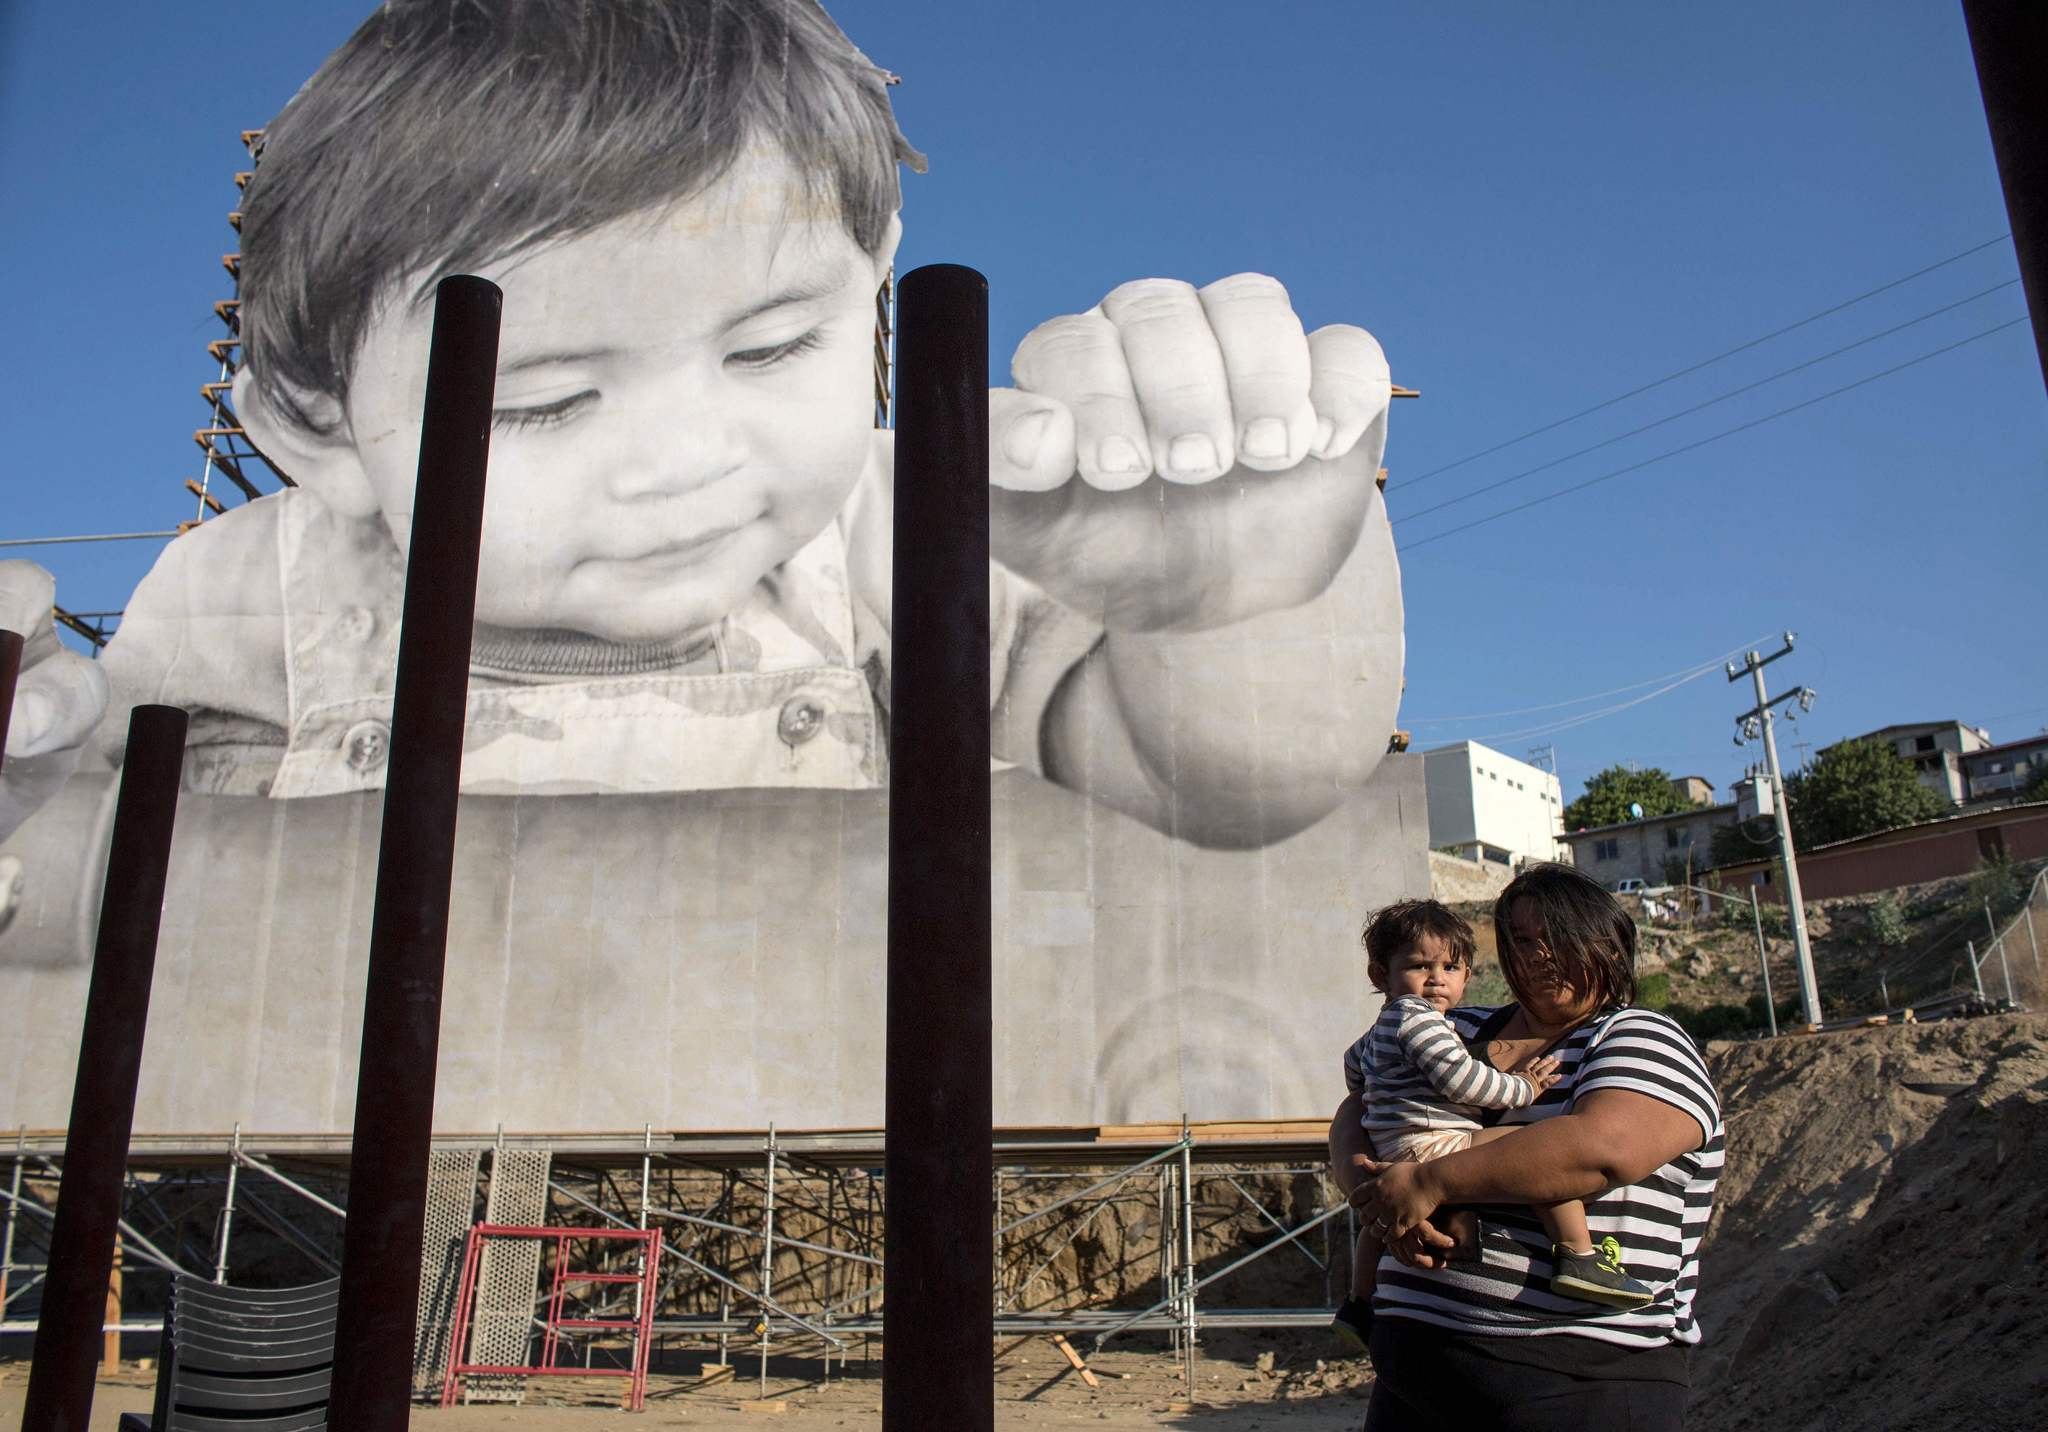 Lissy and her son Enrique Achondo, who served as a model for JR for his artwork installed on the U.S.-Mexico border.